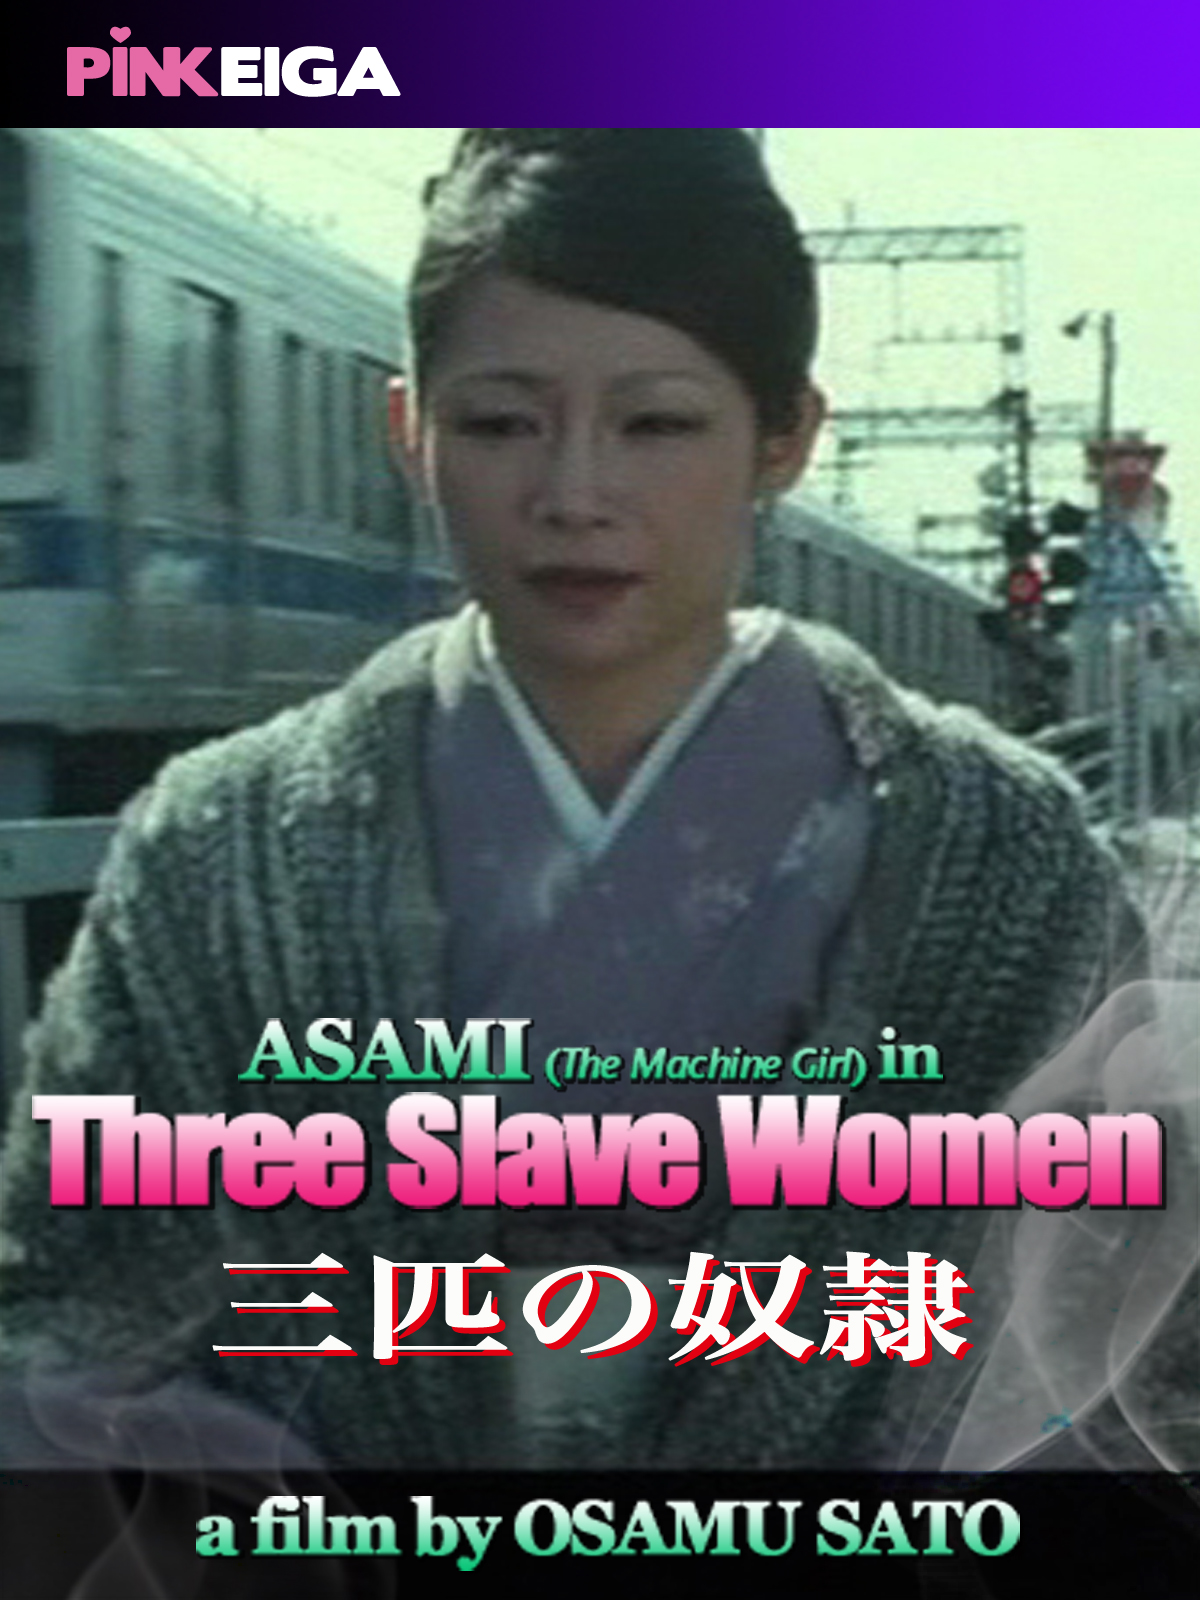 Three Slave Women -SD- DOWNLOAD TO OWN